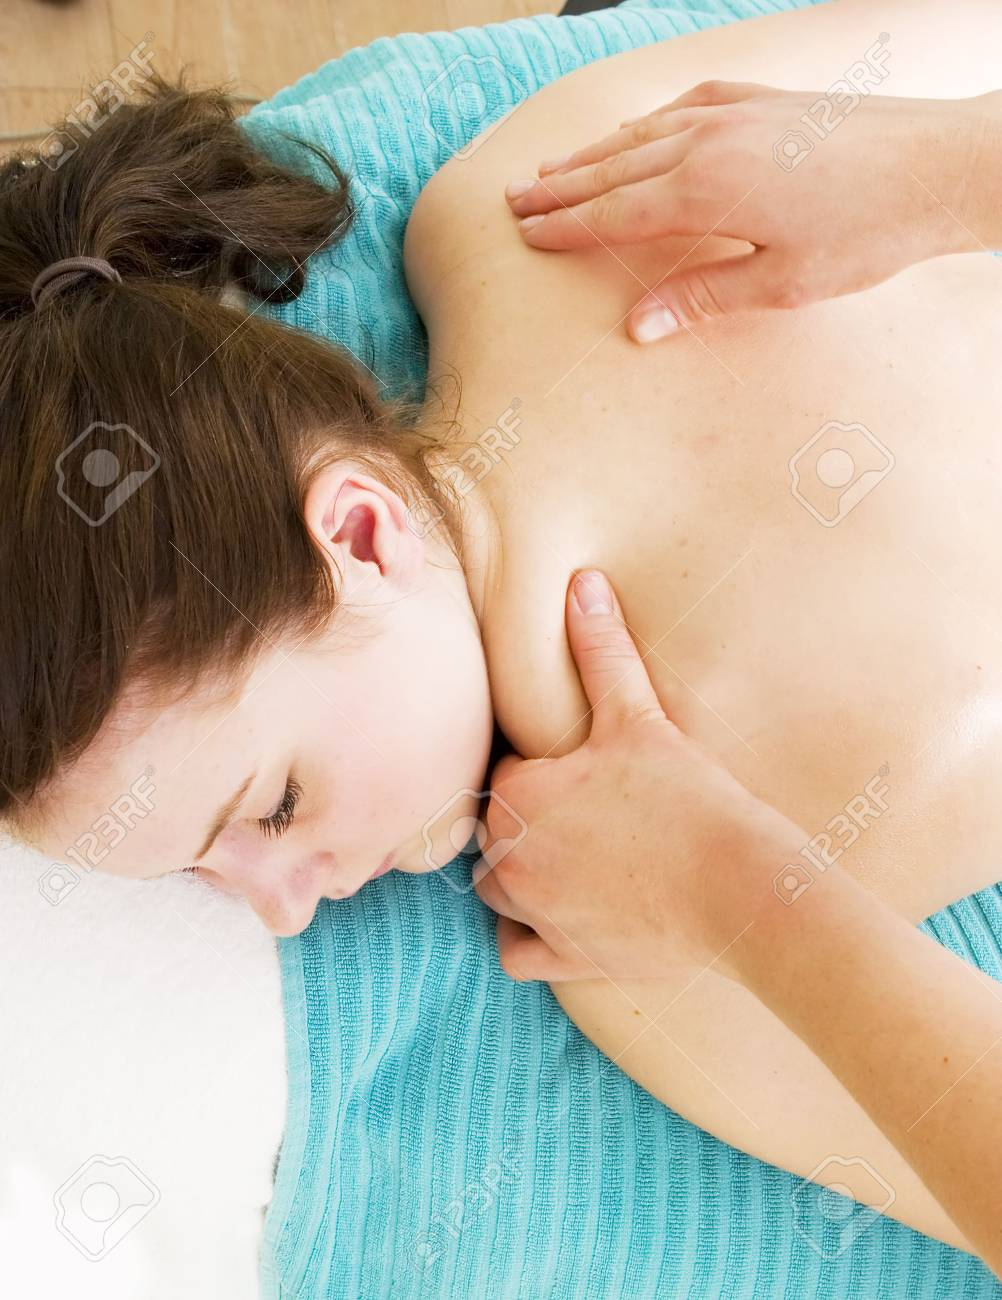 A female receives a shoulder massage at a day spa. Stock Photo - 378663